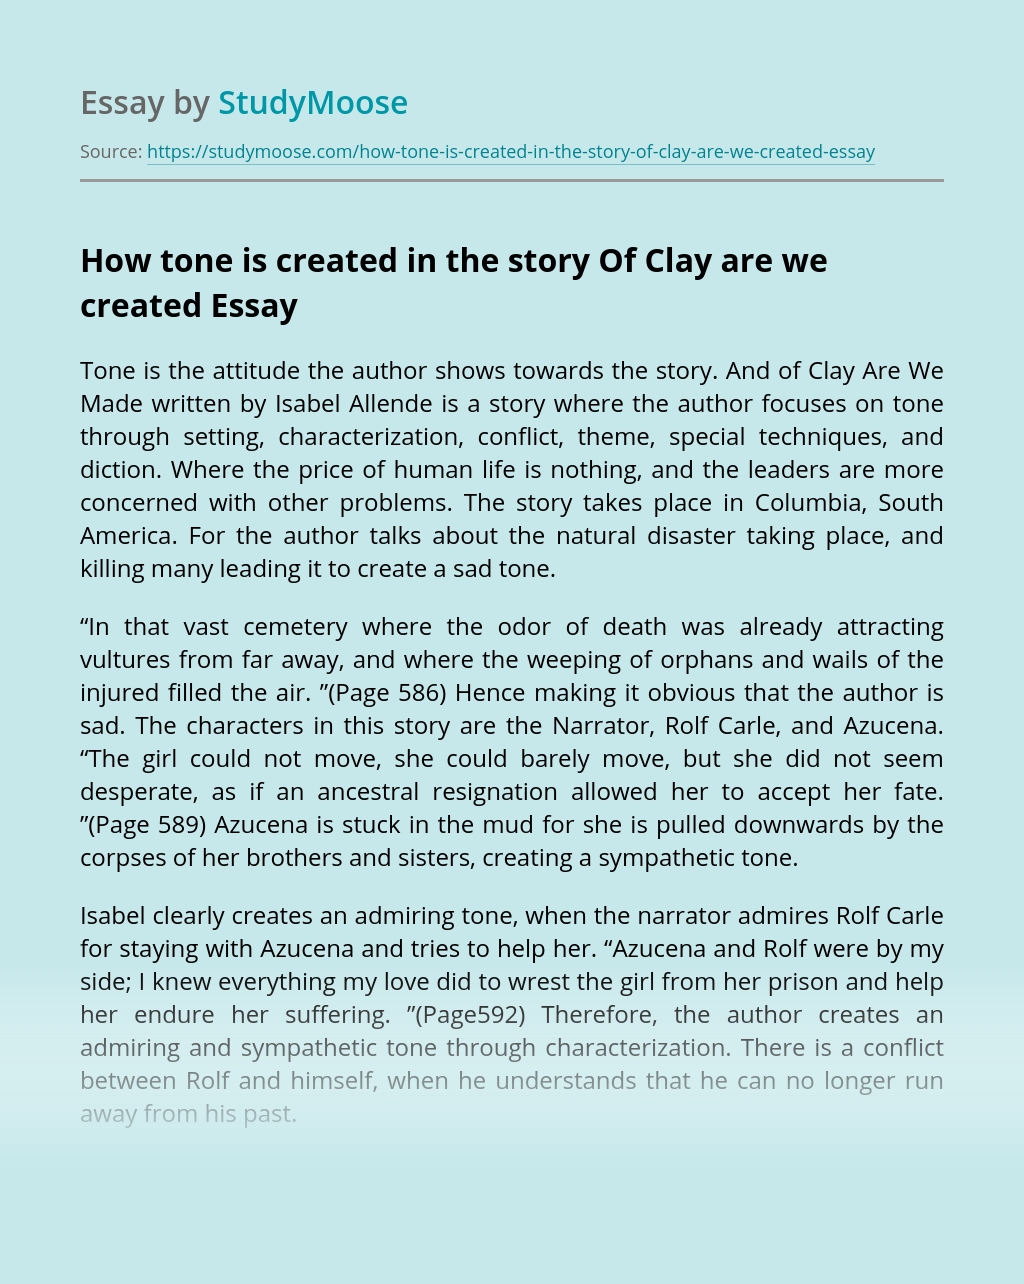 How tone is created in the story Of Clay are we created?